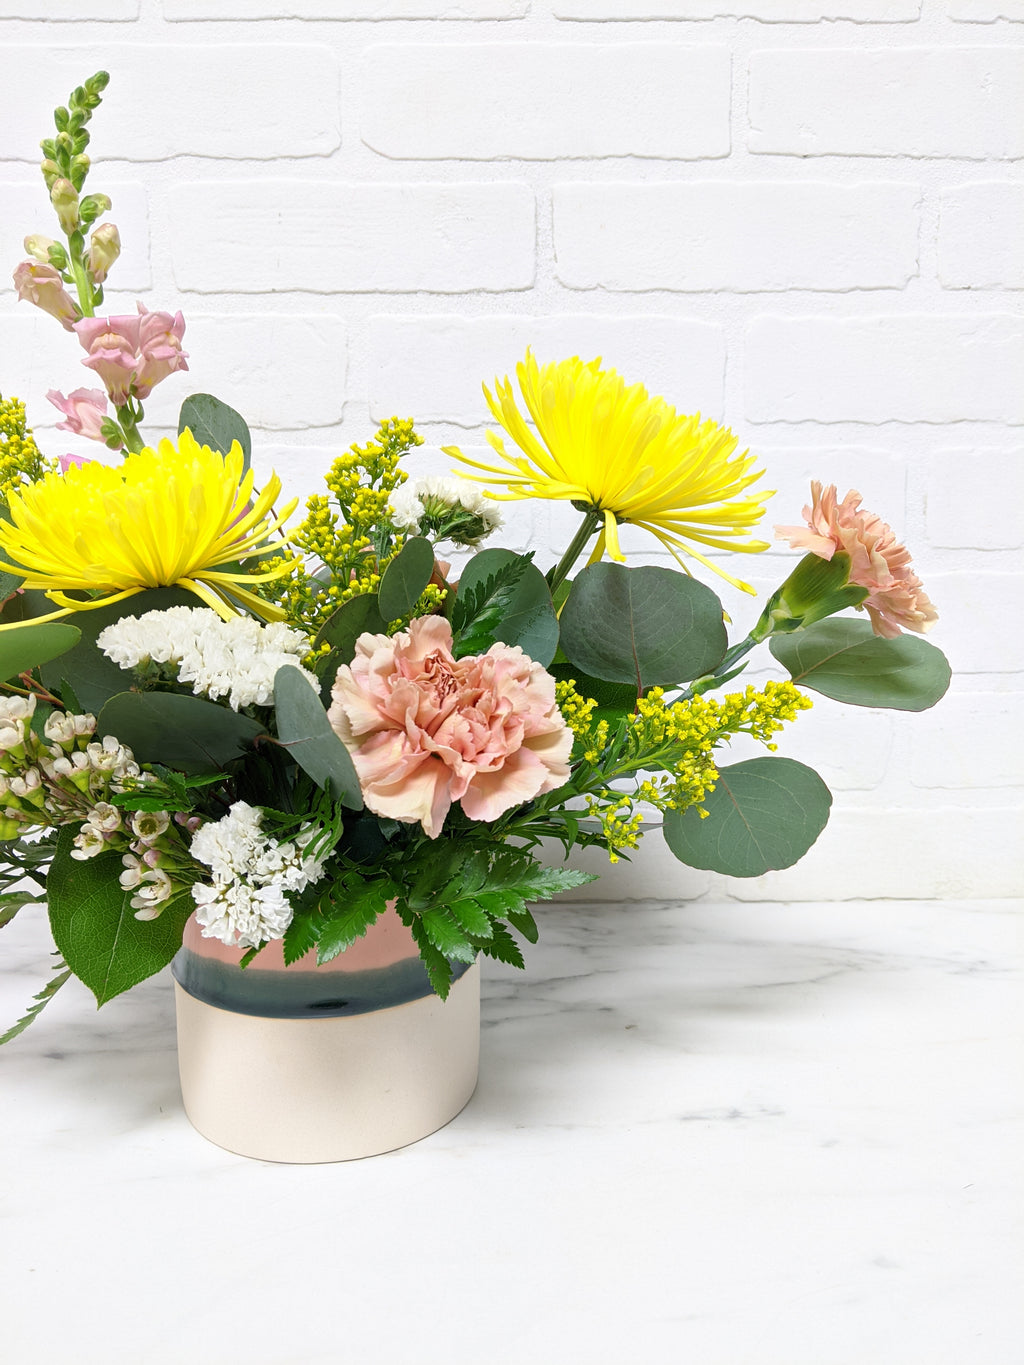 Closer view of yellow and white accent flowers, larger yellow and pink flowers, and green leaves.